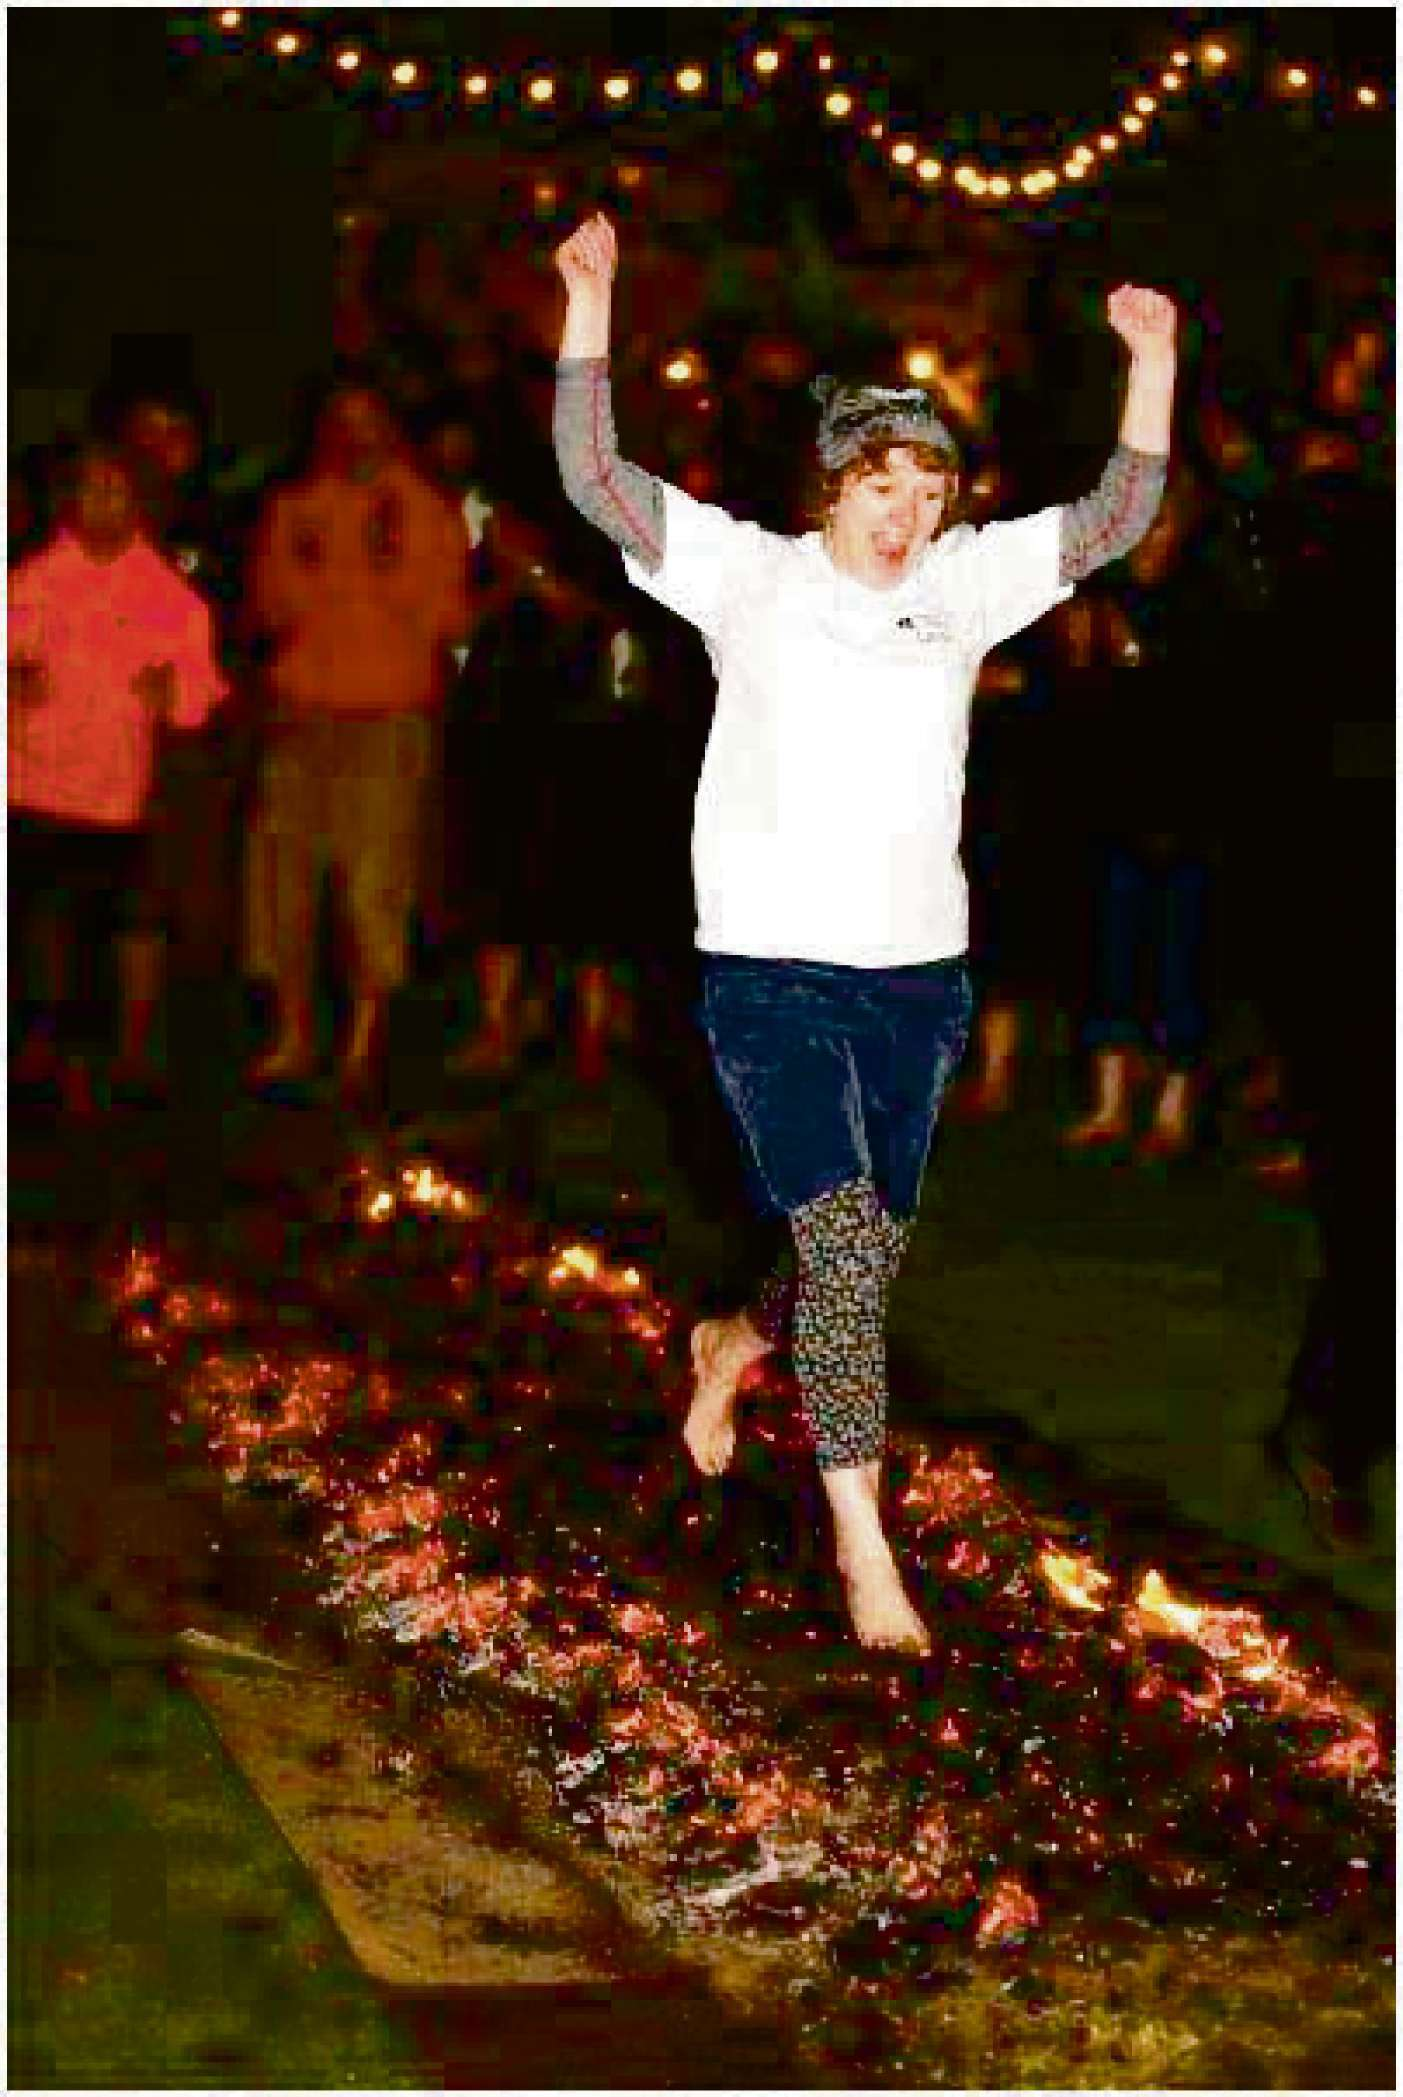 Lynne braves the firewalk for charity